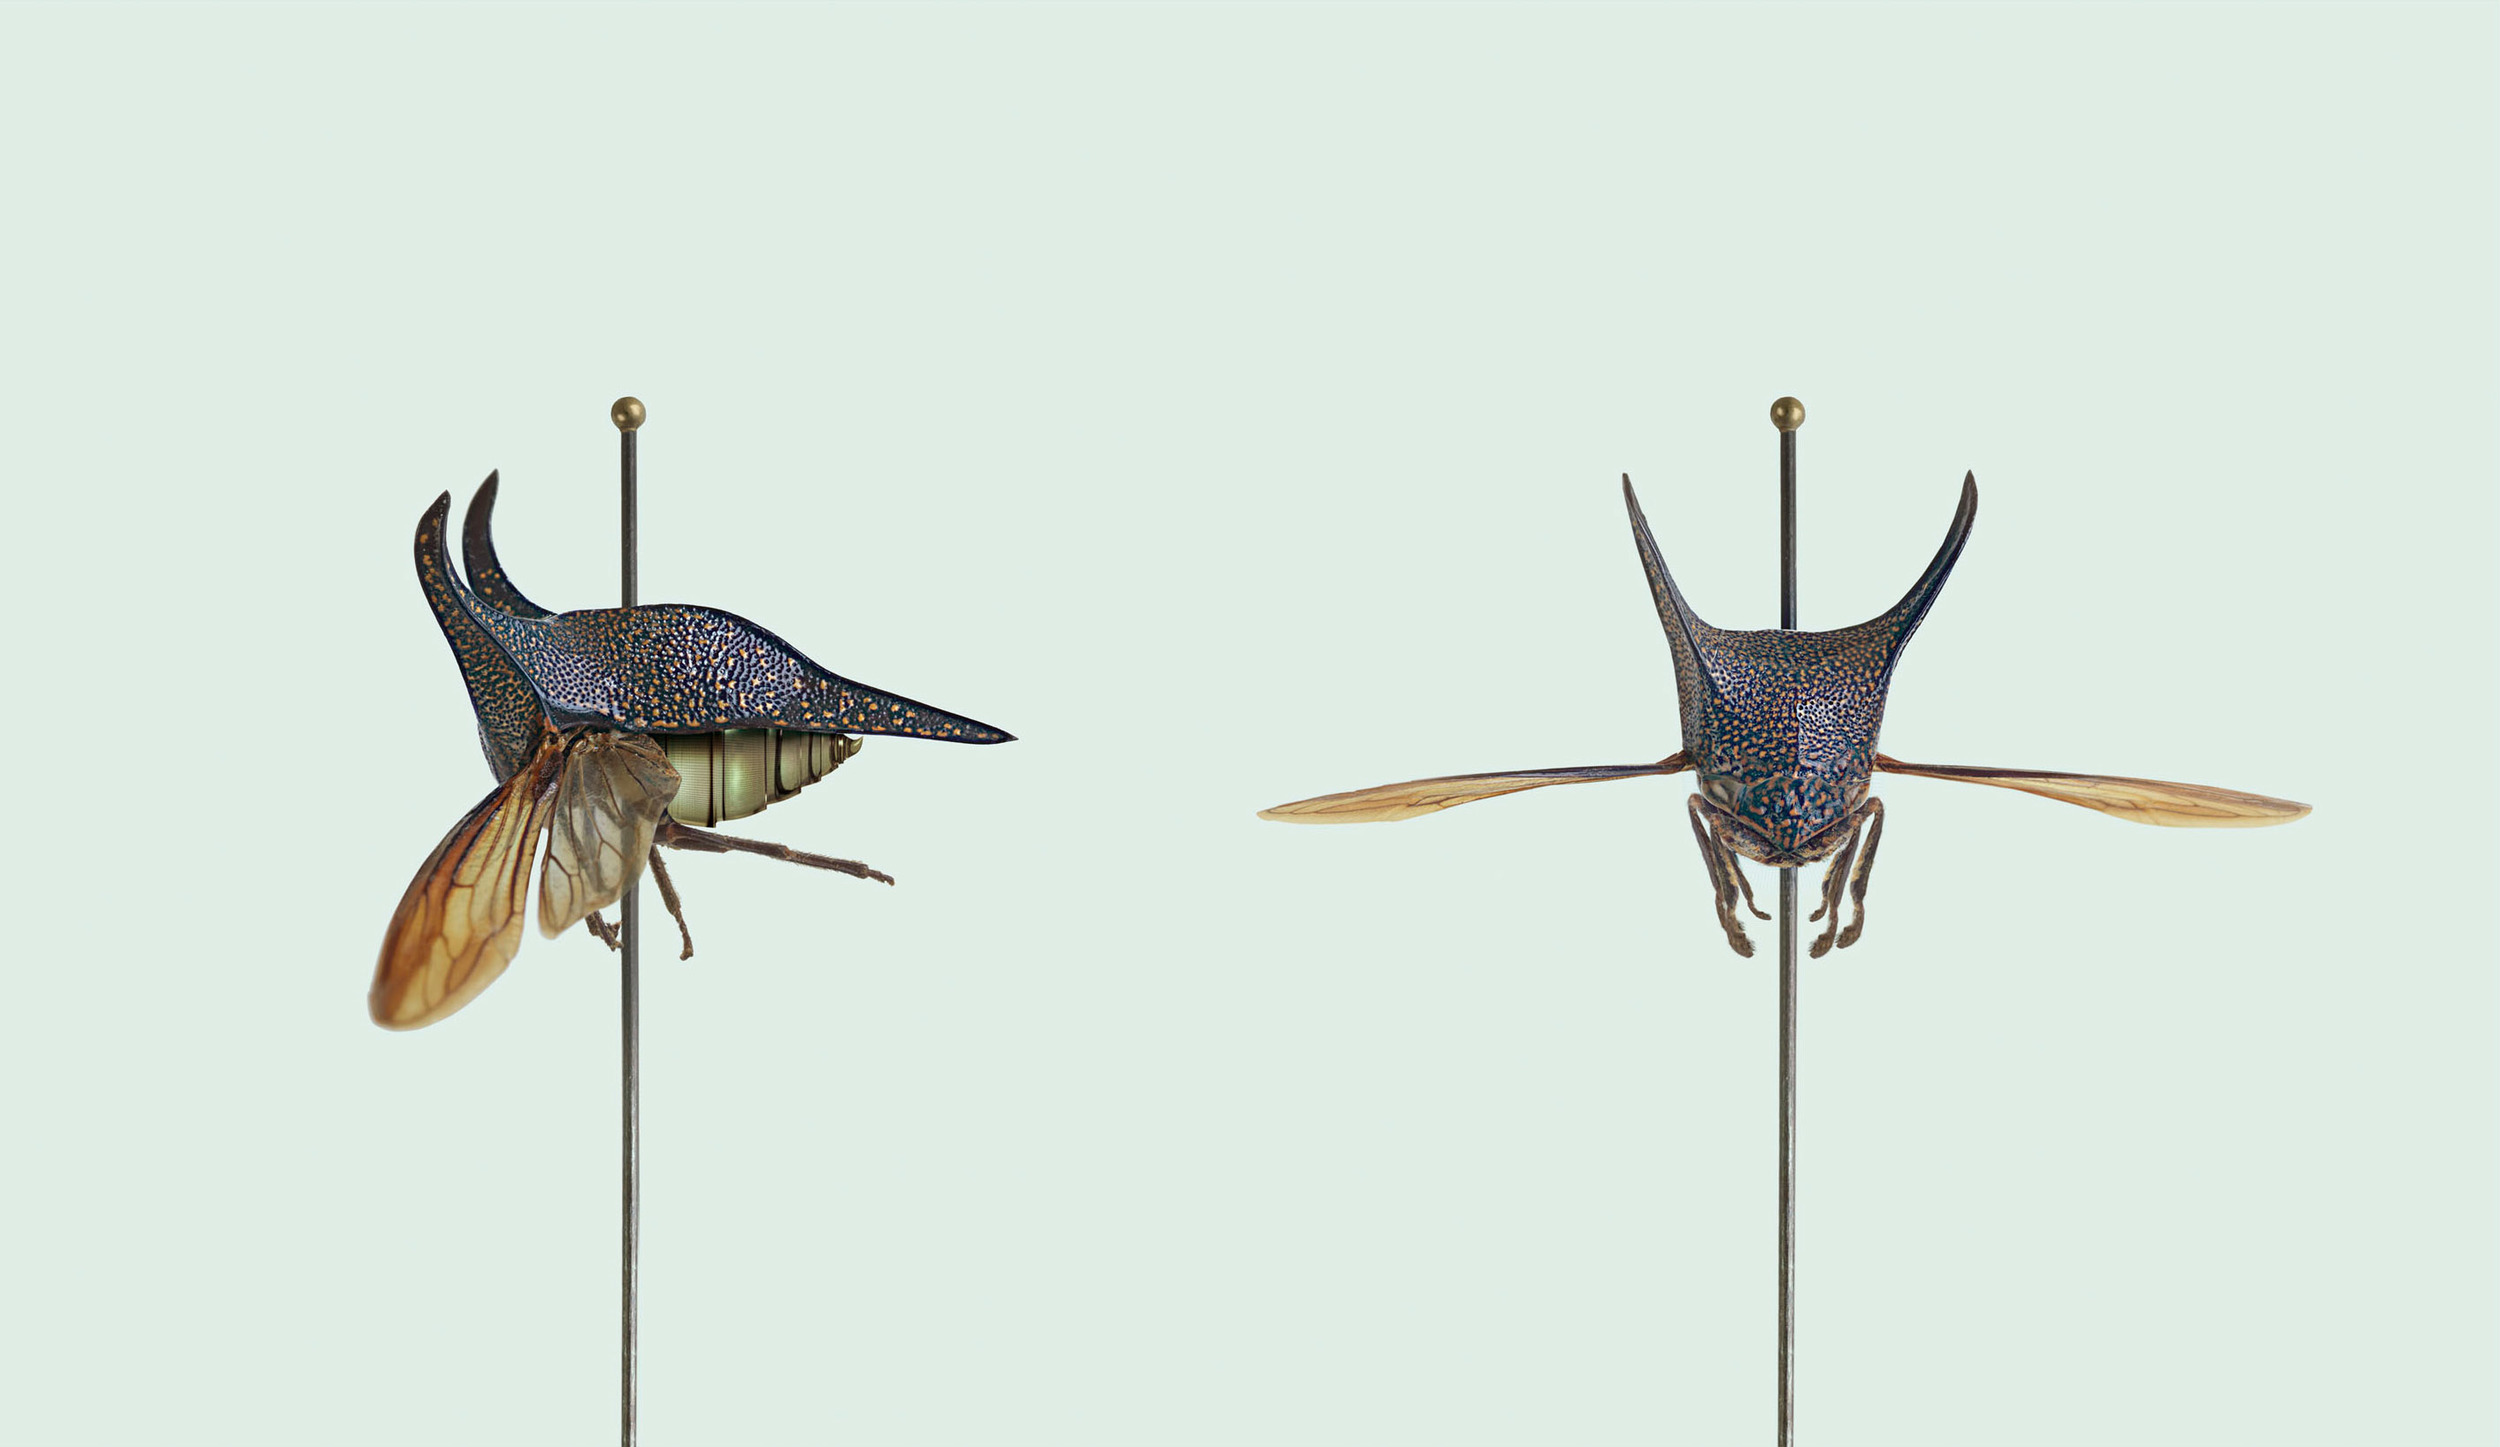 Image courtesy of the artist, Vincent Fournier. Post Natural History, 2013.